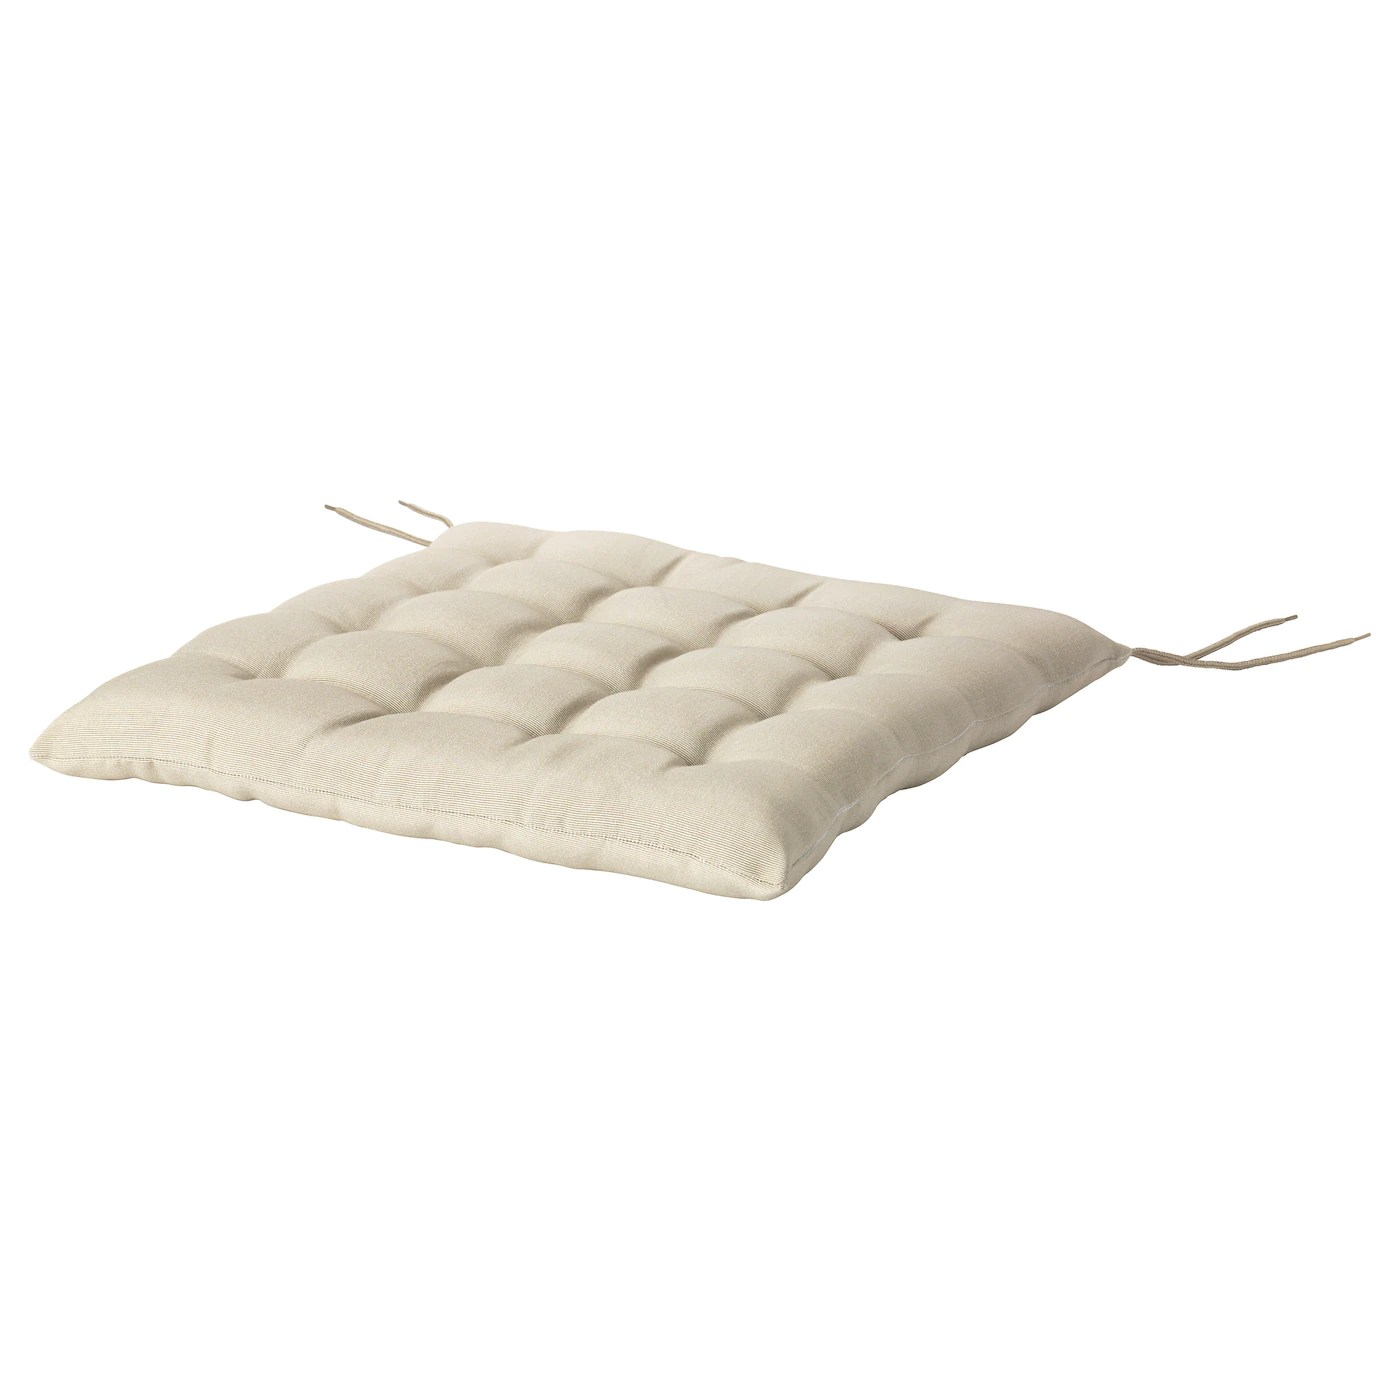 chair cushions with ties ikea low back beach outdoor & garden |